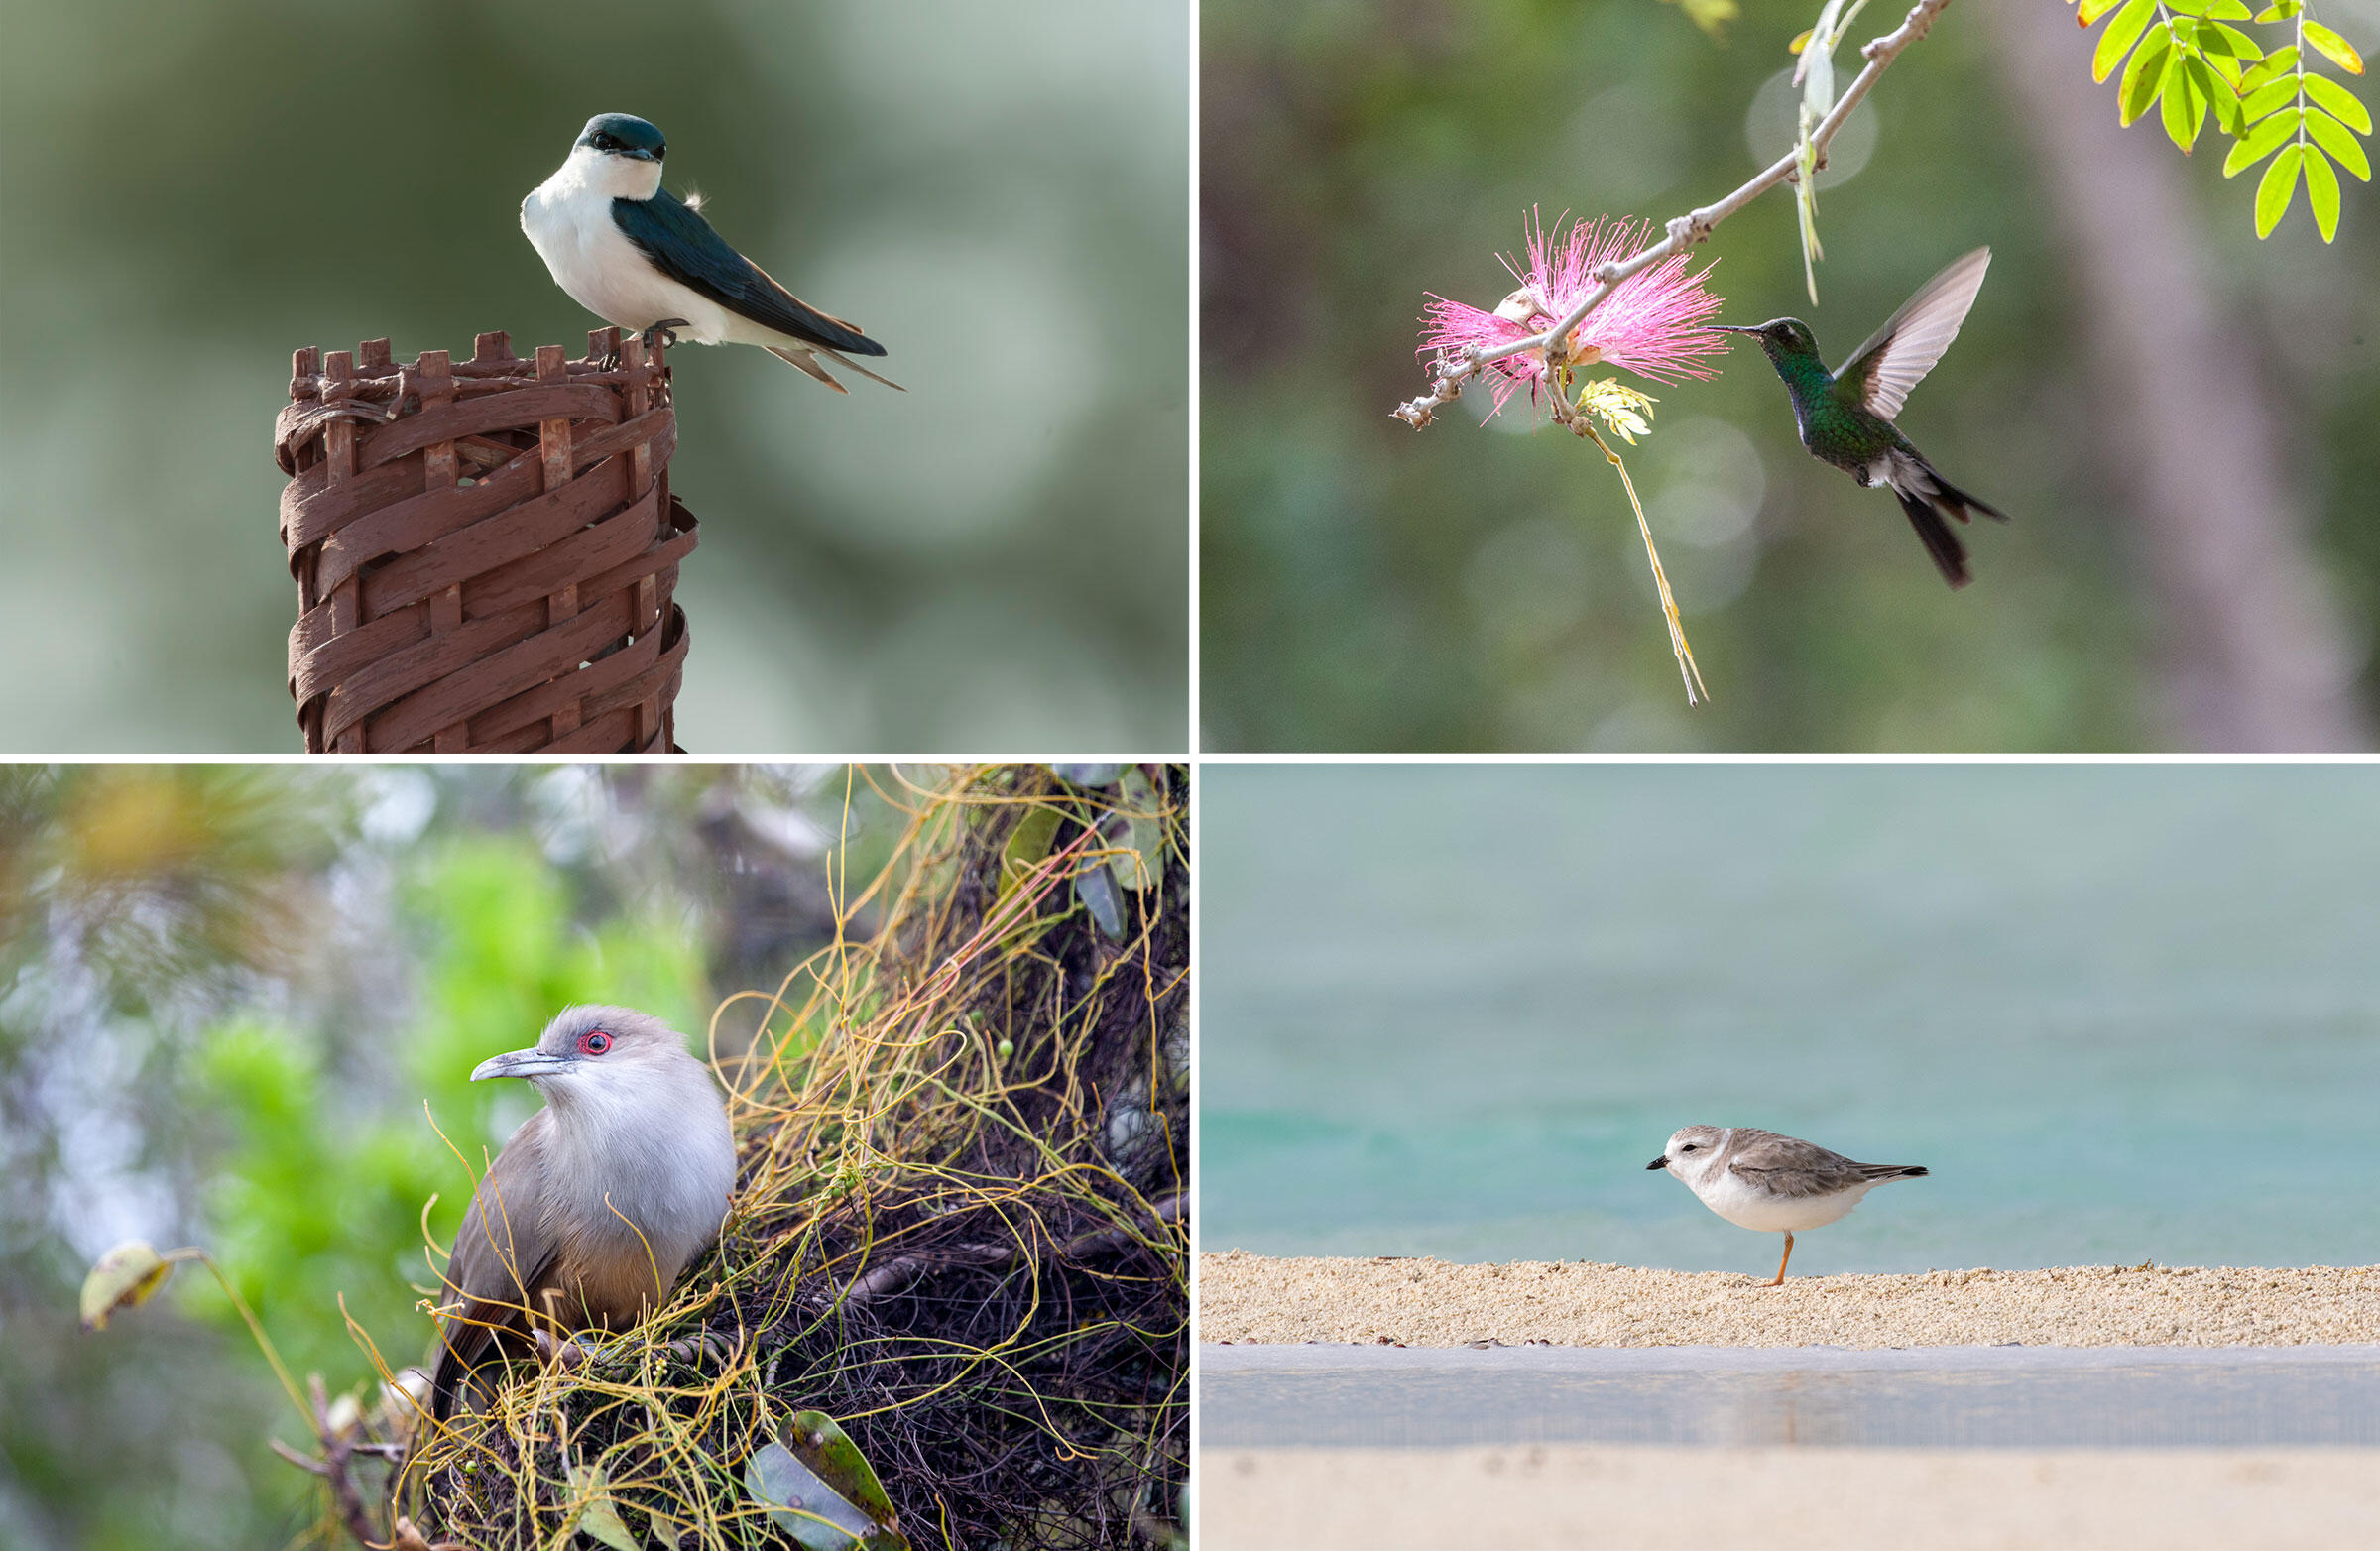 From top left, clockwise: Bahamas Swallow, Cuban Emerald, Piping Plover and Great Lizard-Cuckoo. Photos from top left: Walker Golder, Camilla Cerea/Audubon (3)